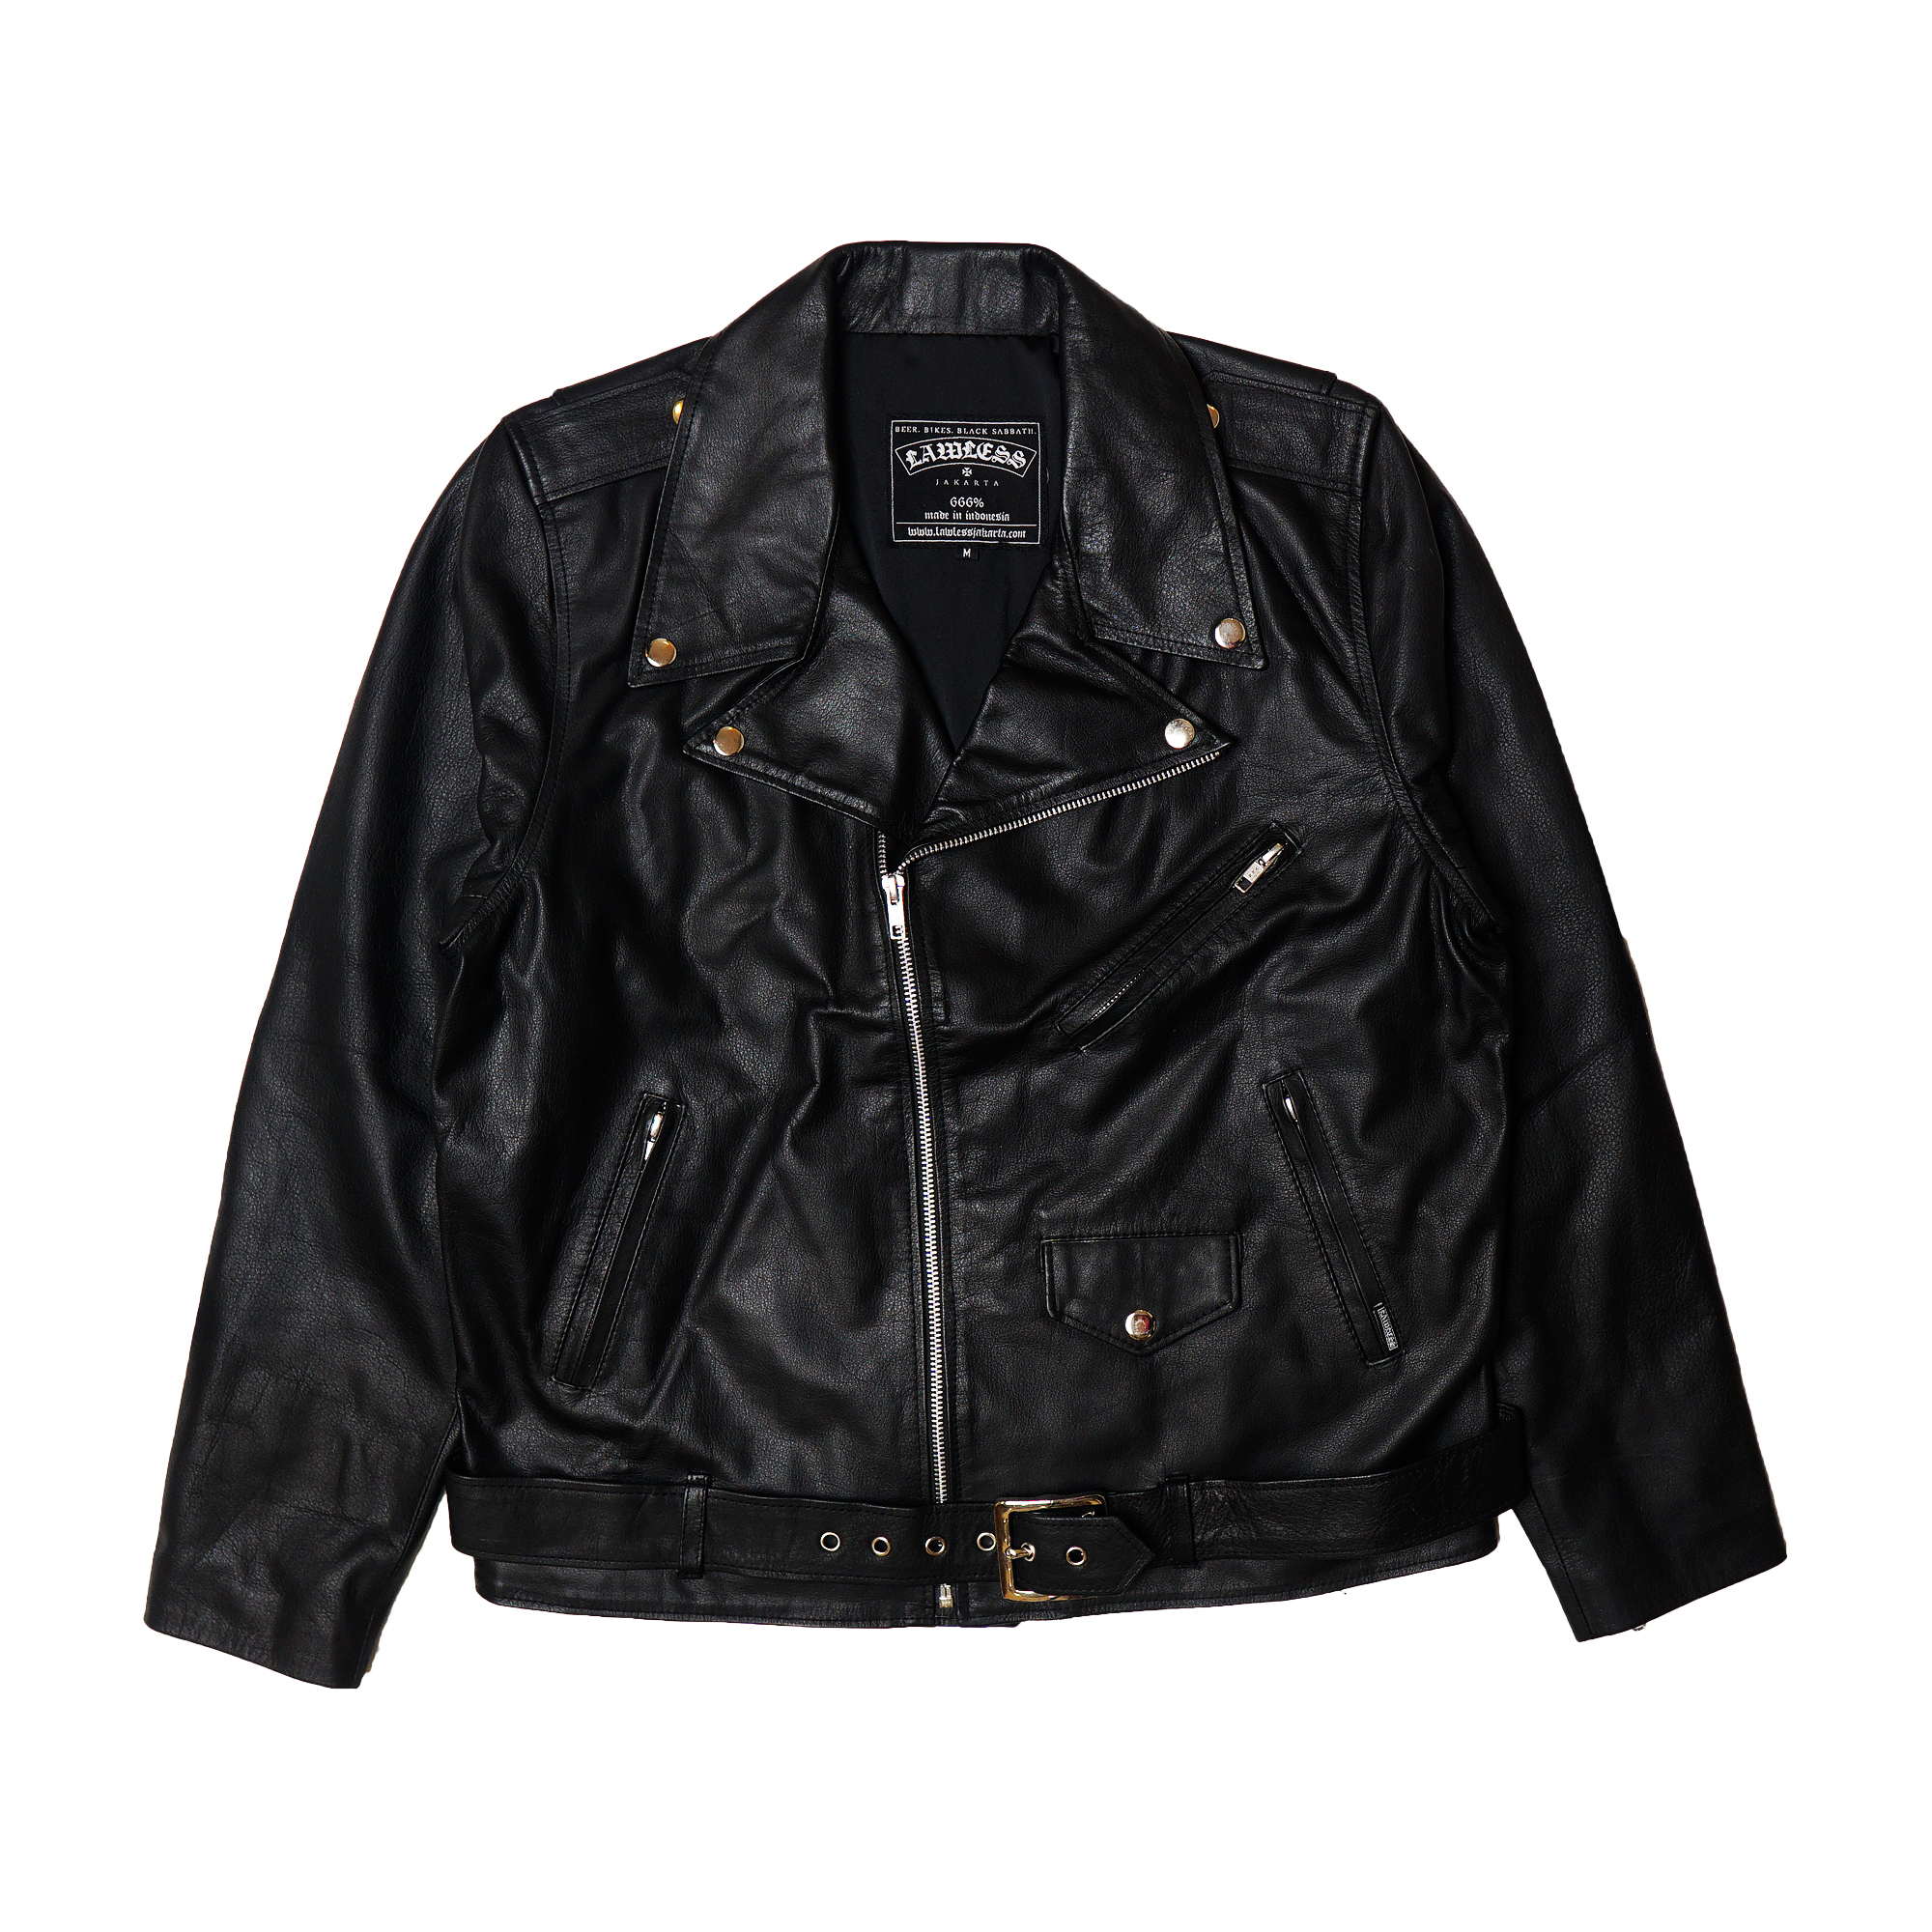 lawless_leather_jacket